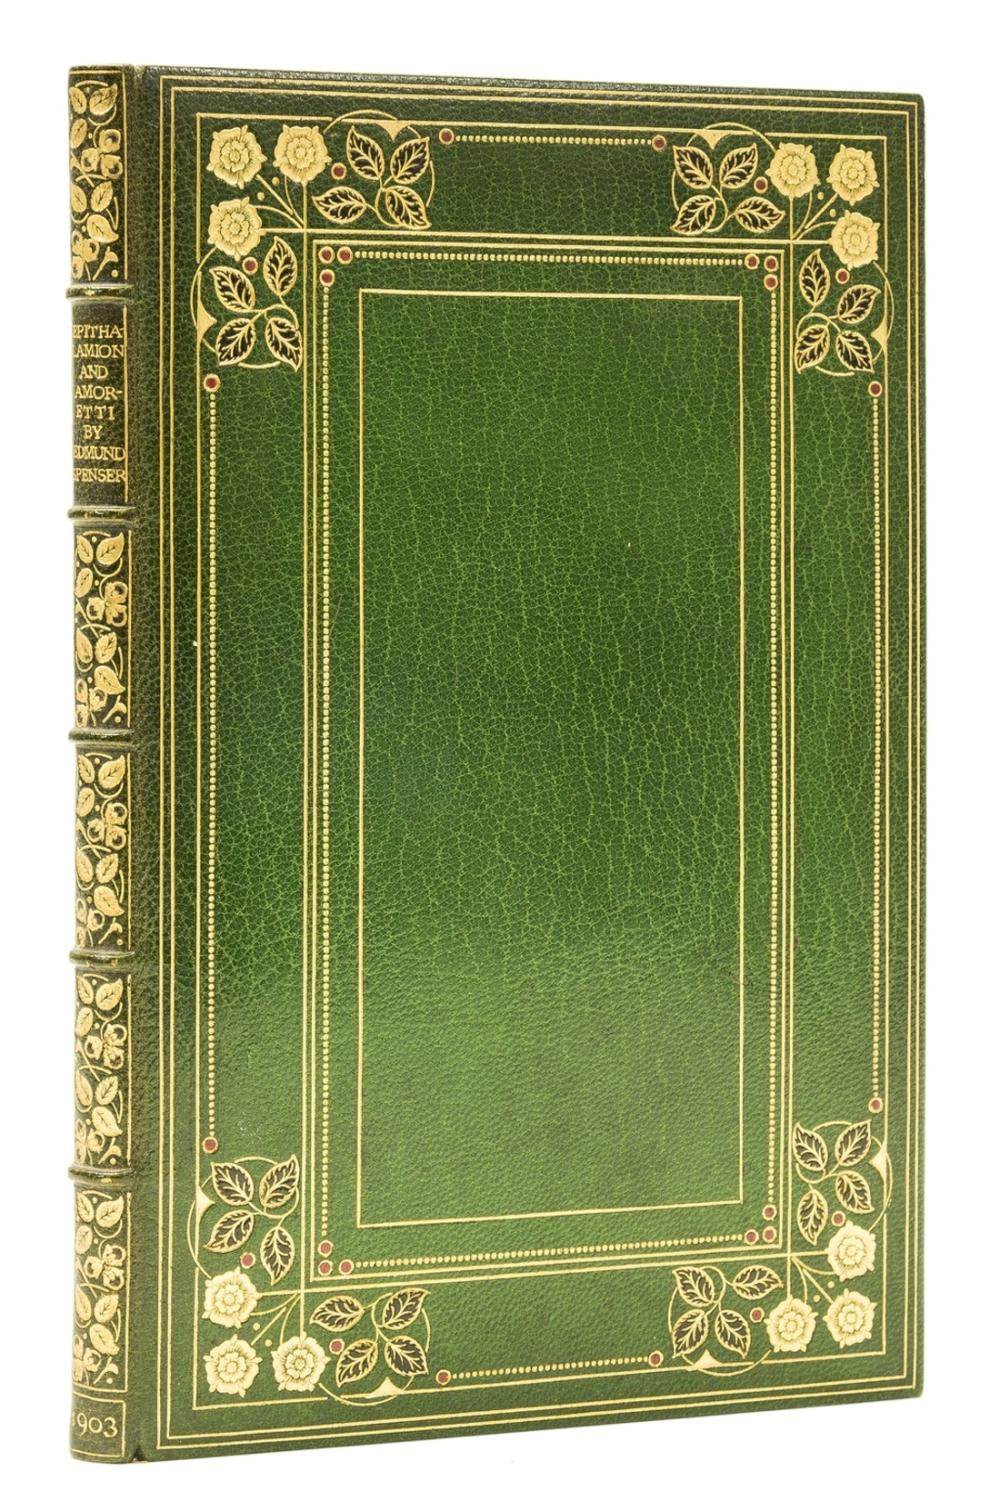 Binding.- Spenser (Edmund) Epithalamion and Amoretti, one of 250 copies, bound in panelled crushed green morocco in a Doves Bindery style, by Bumpus, 1903.